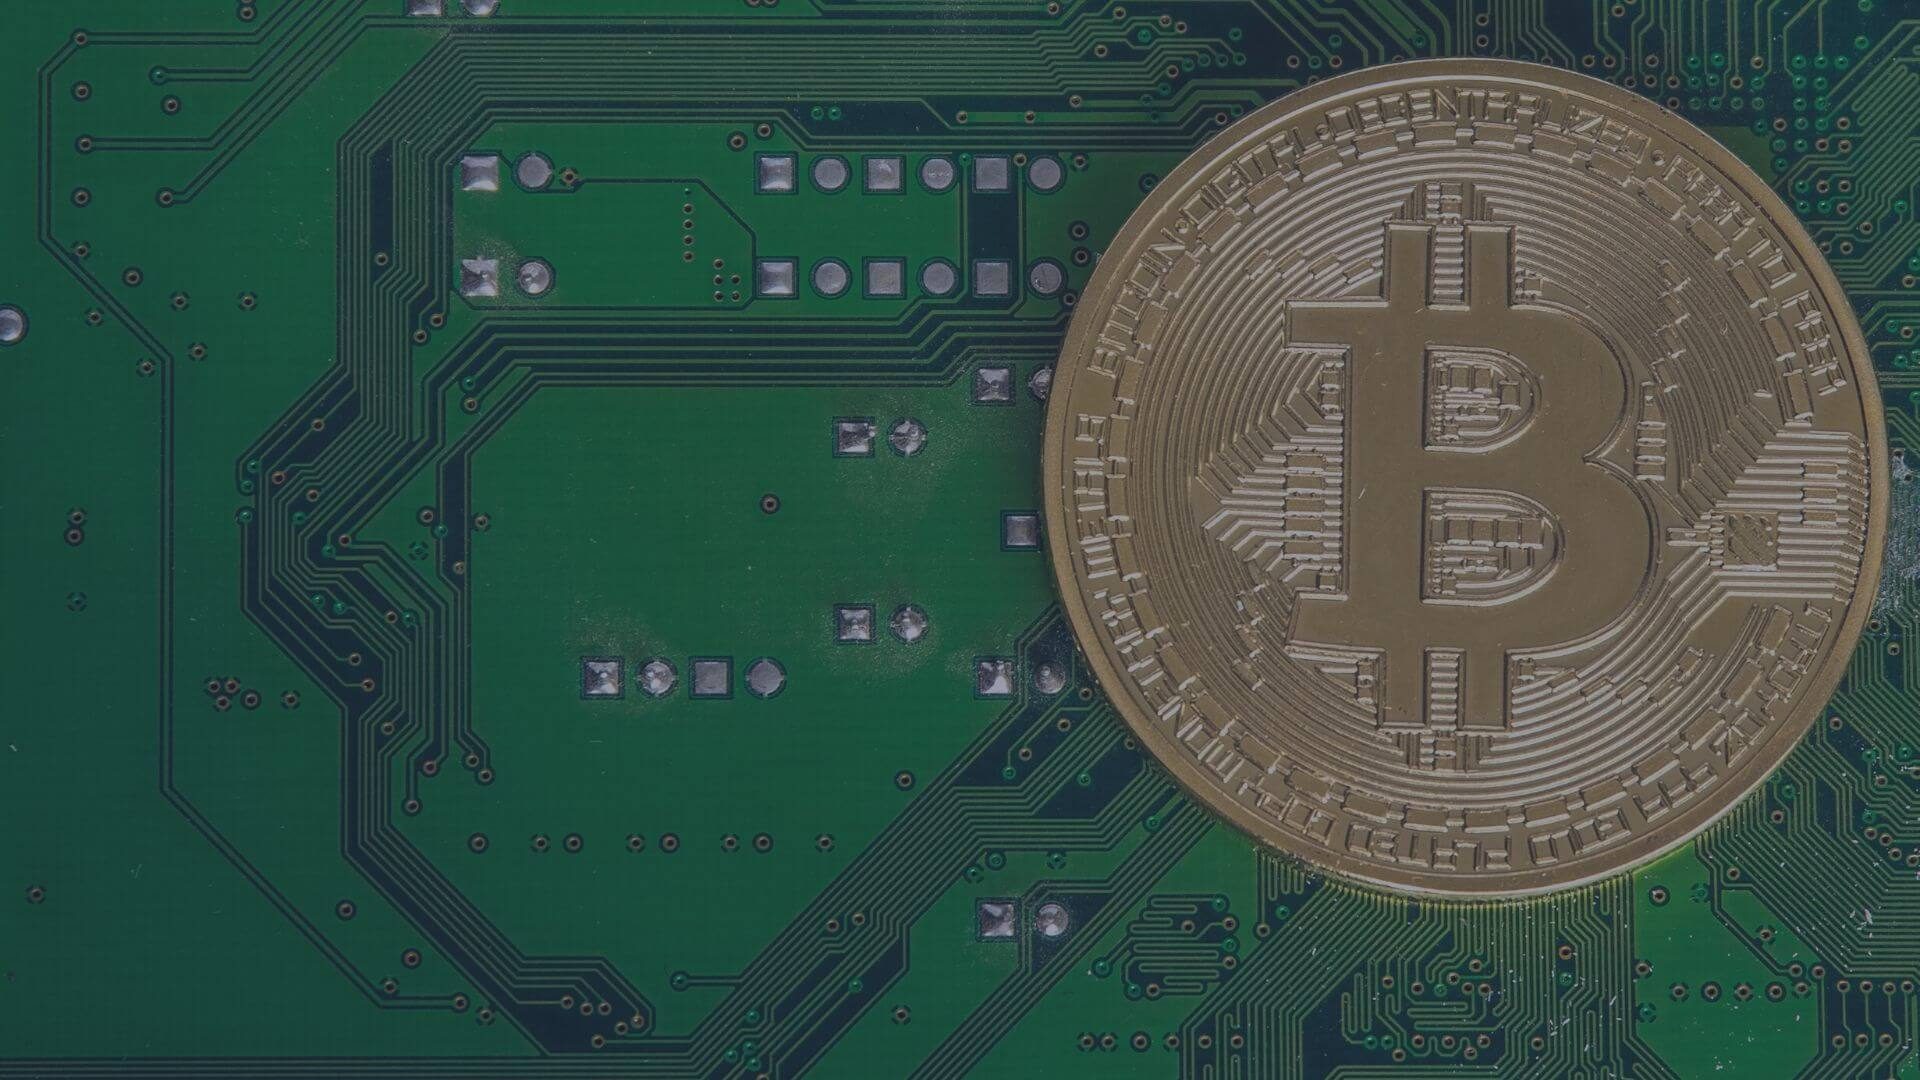 Electronic Currency - Bitcoin